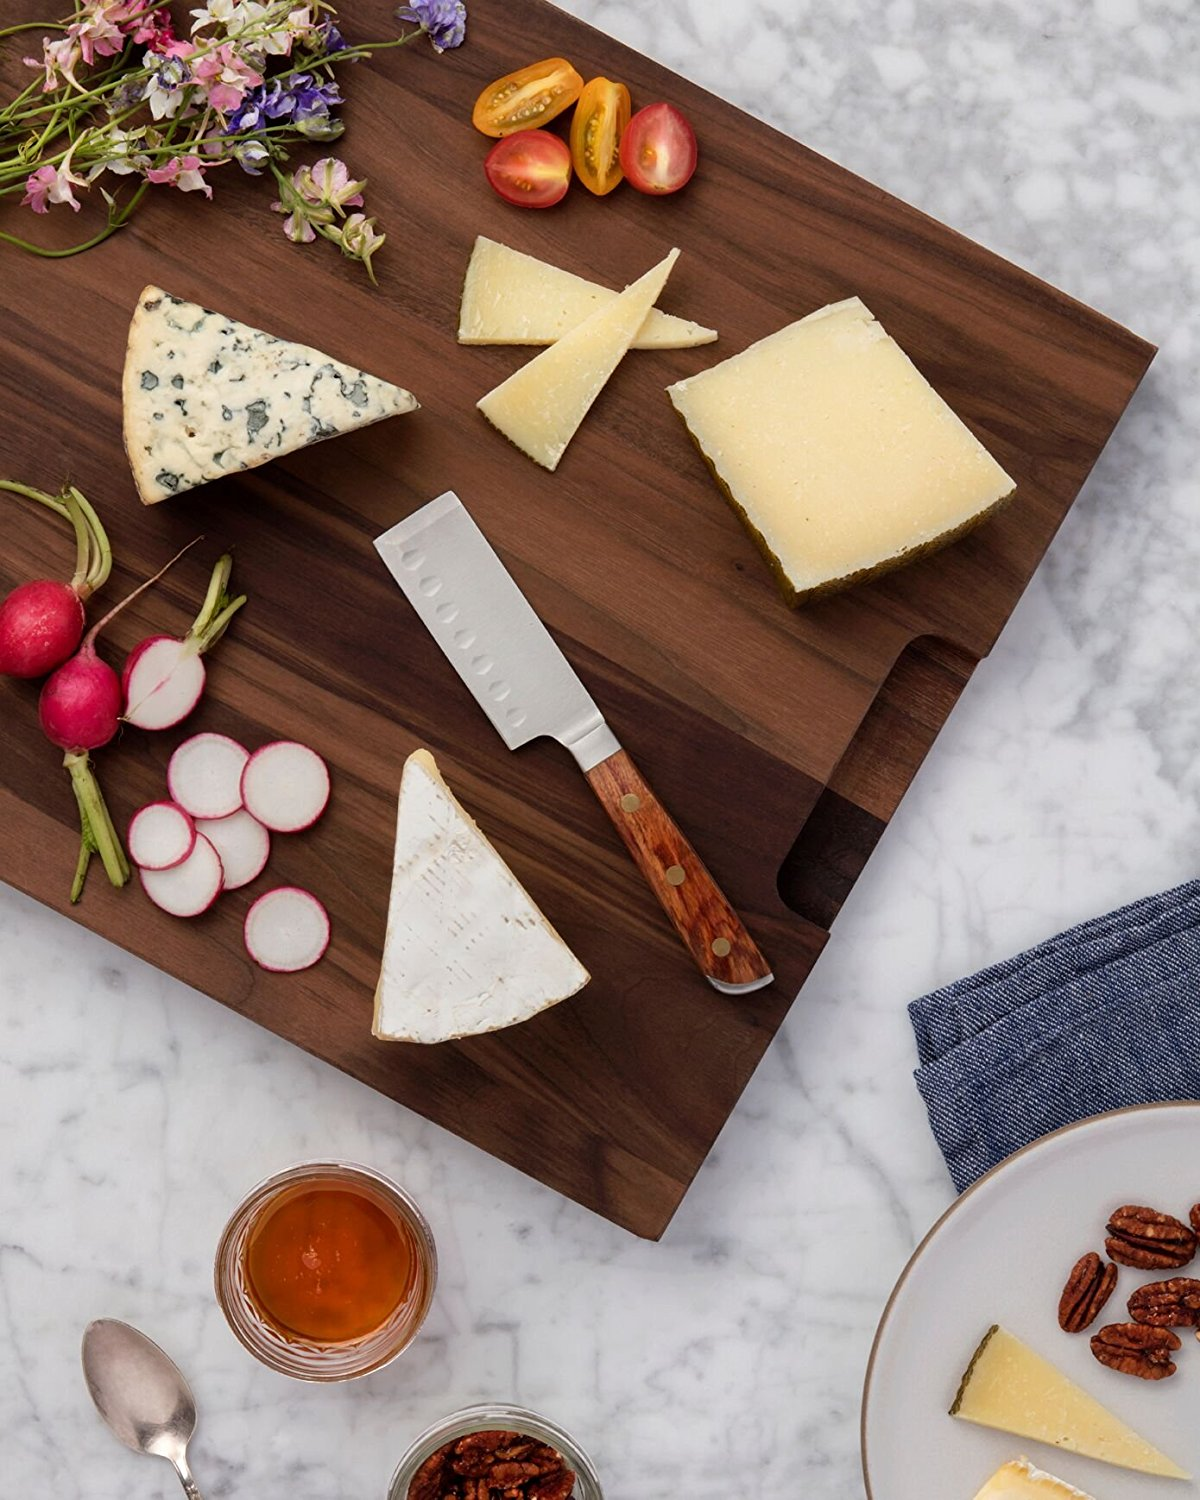 Wp Design Cheese Knife Glutto Digest